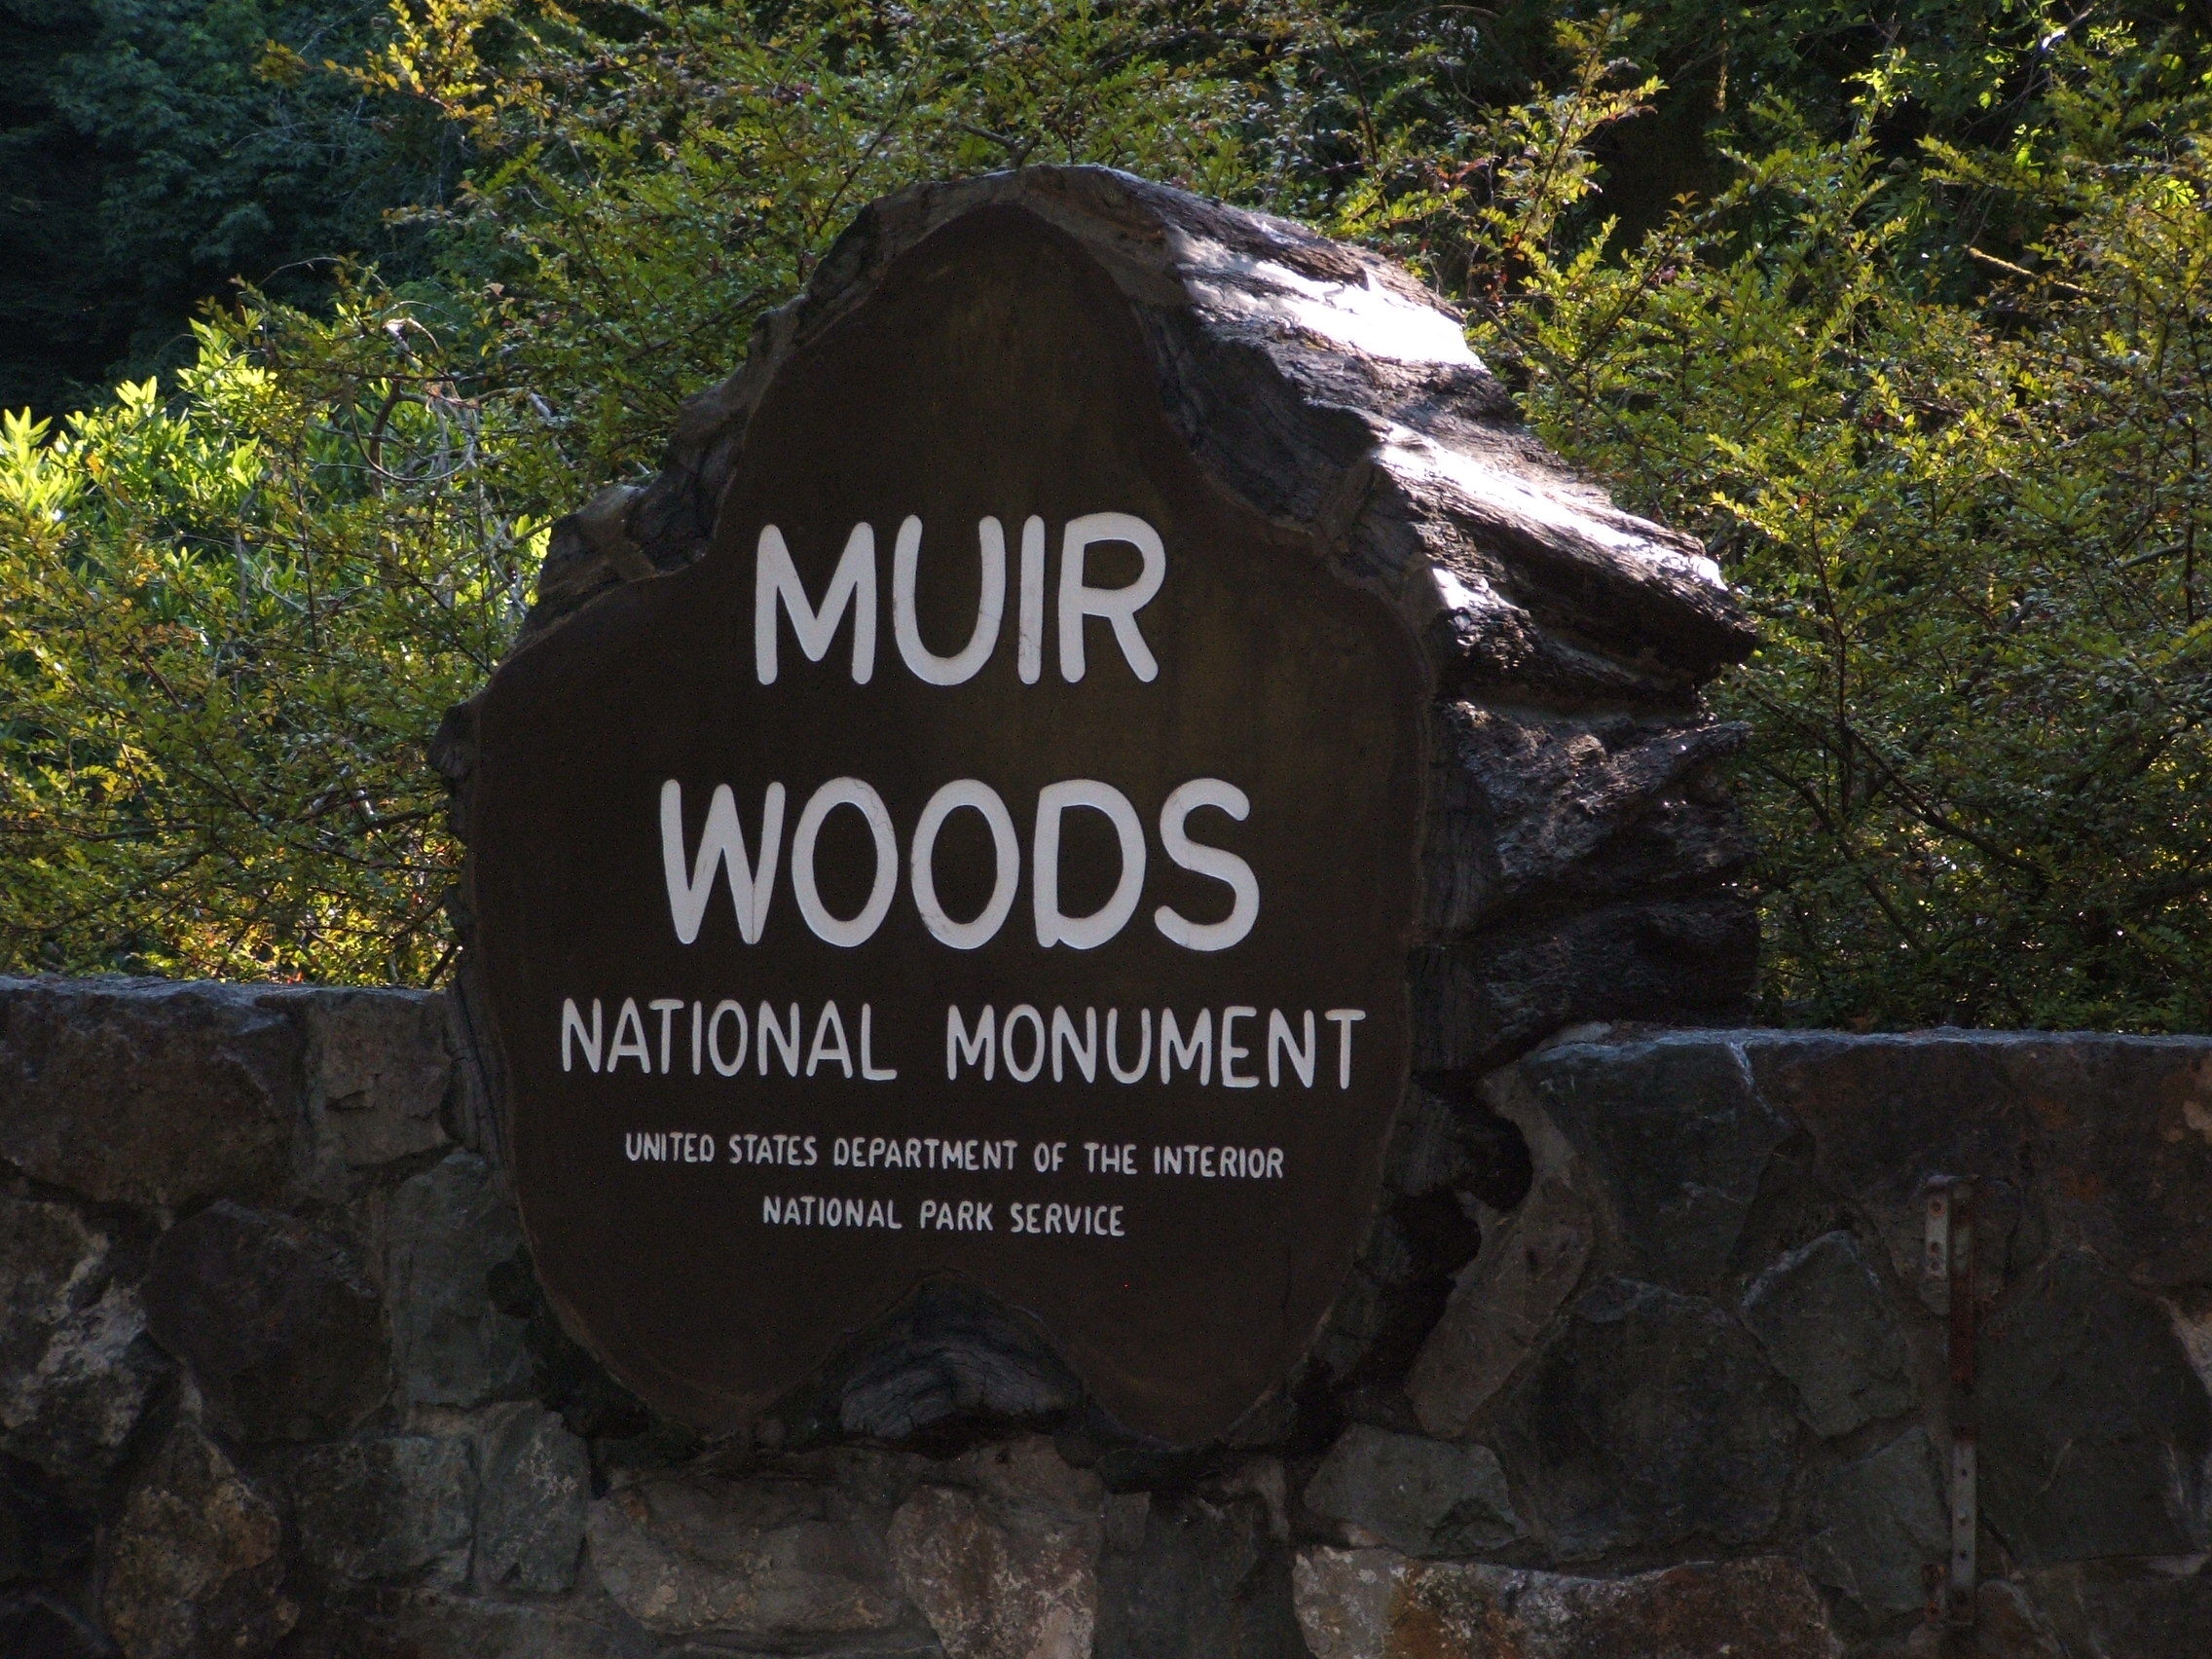 Muir_Woods_National_Monument 1